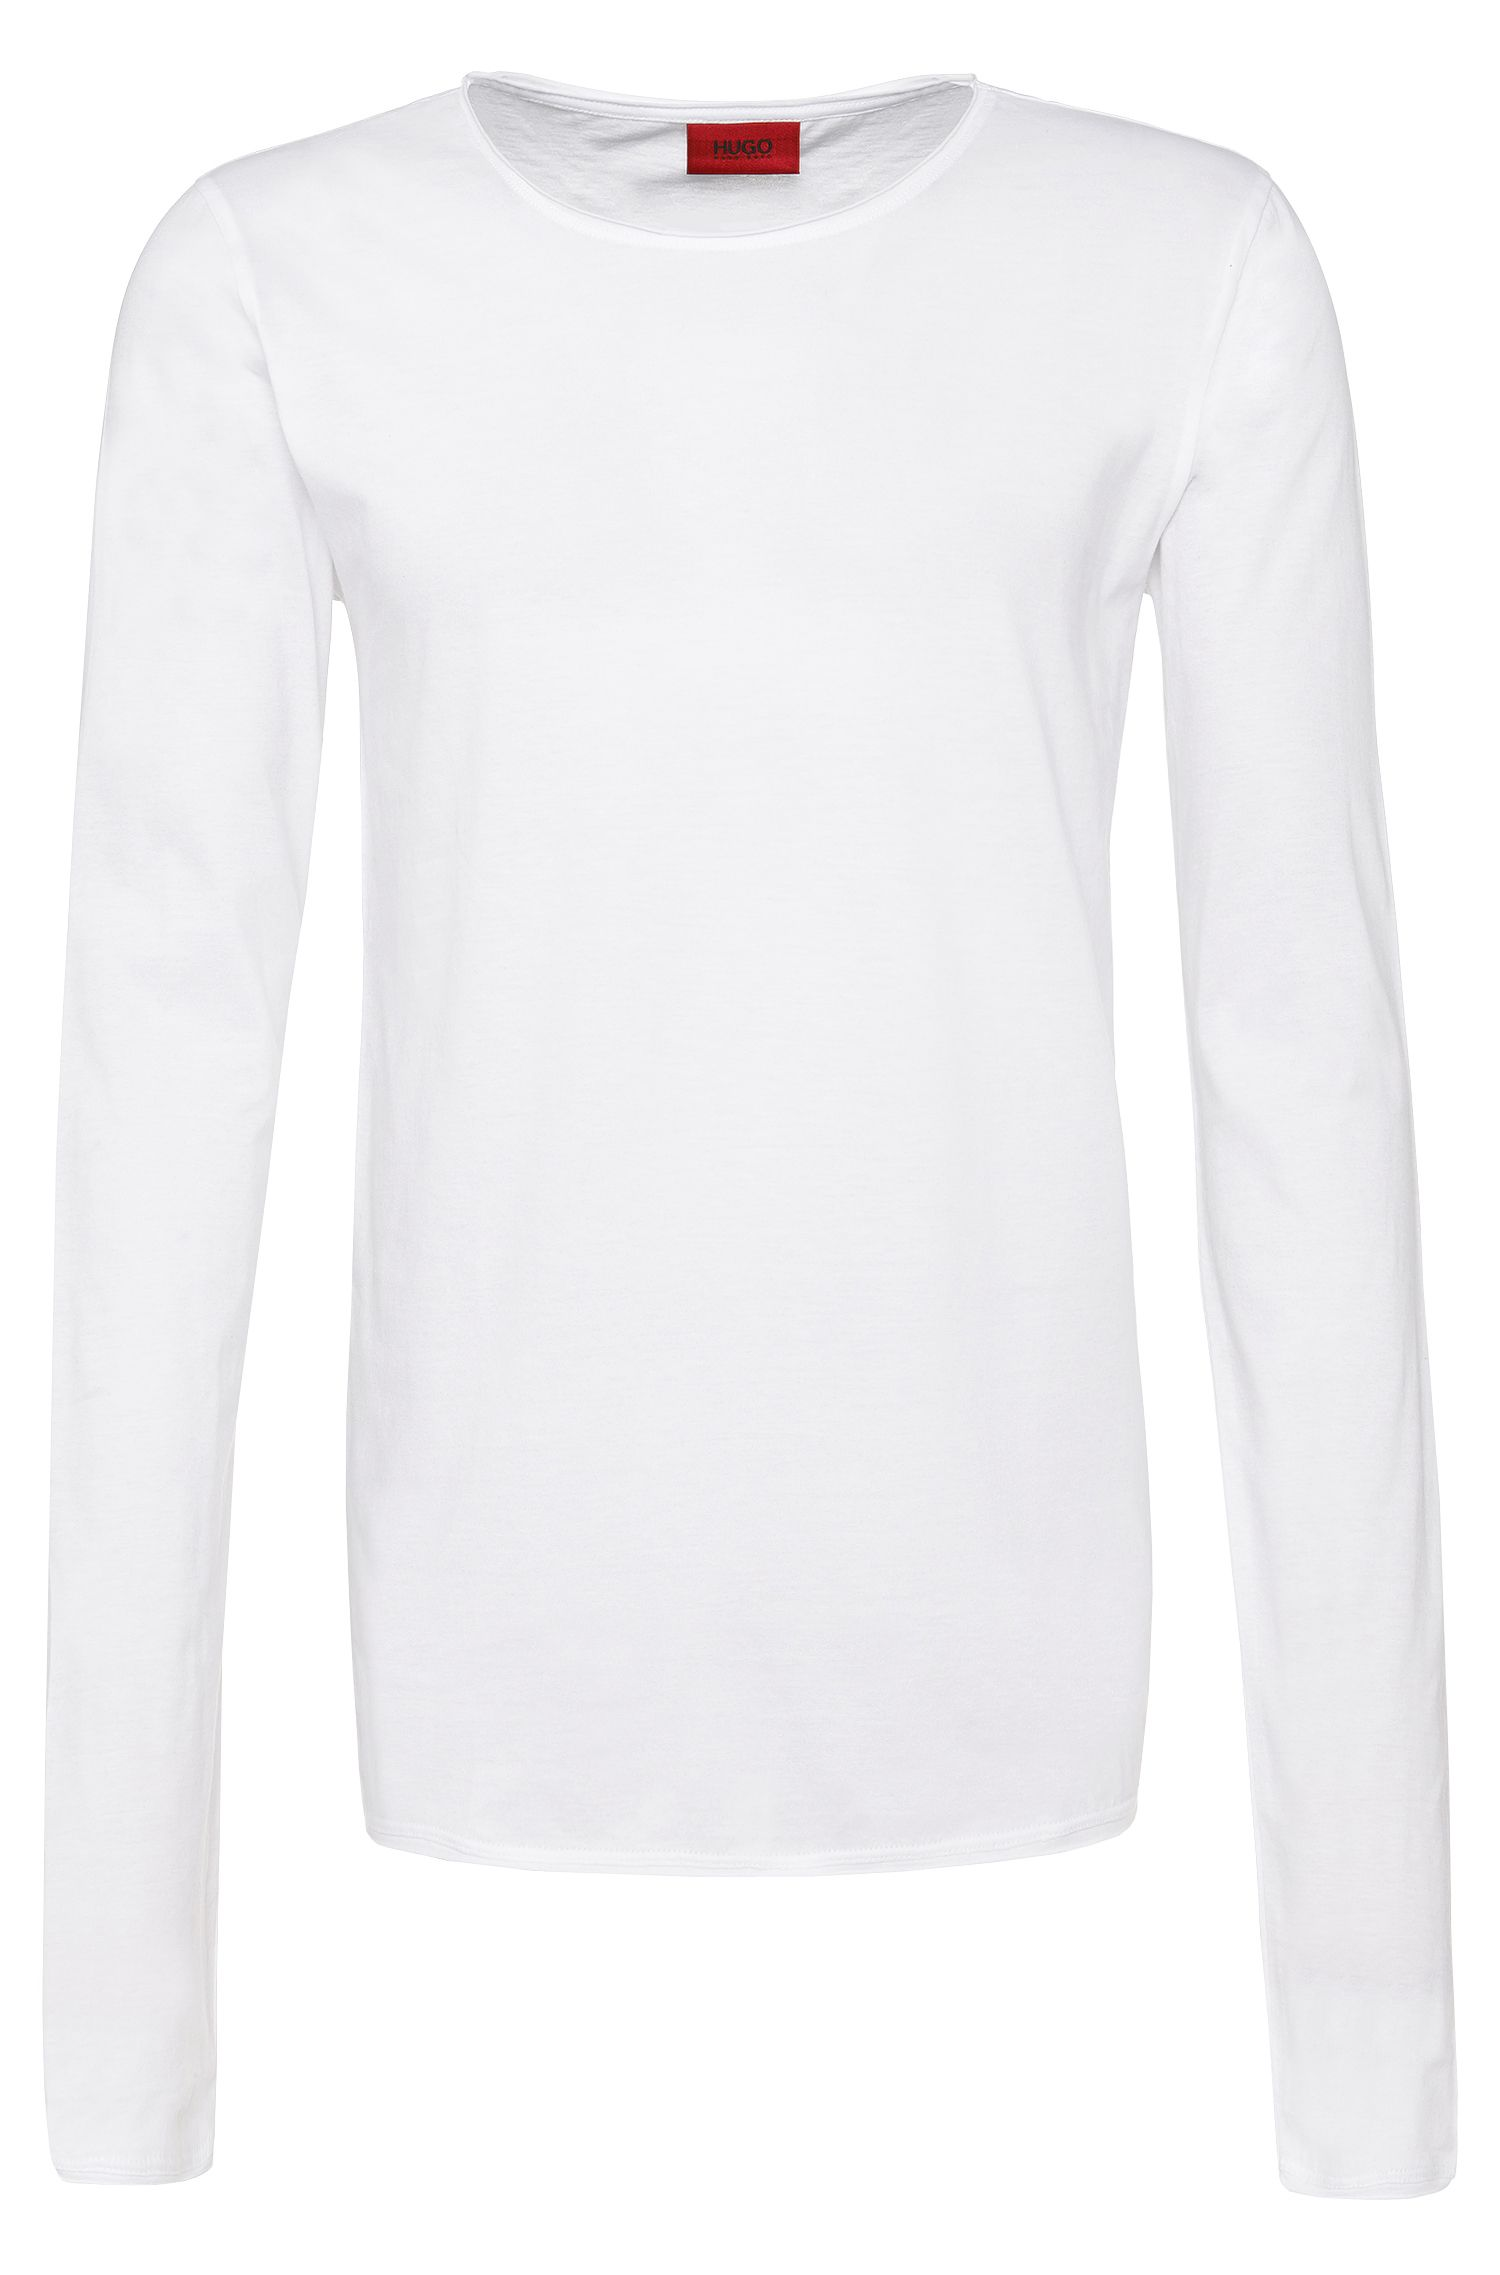 Relaxed-fit long-sleeved shirt in cotton: 'Doops'